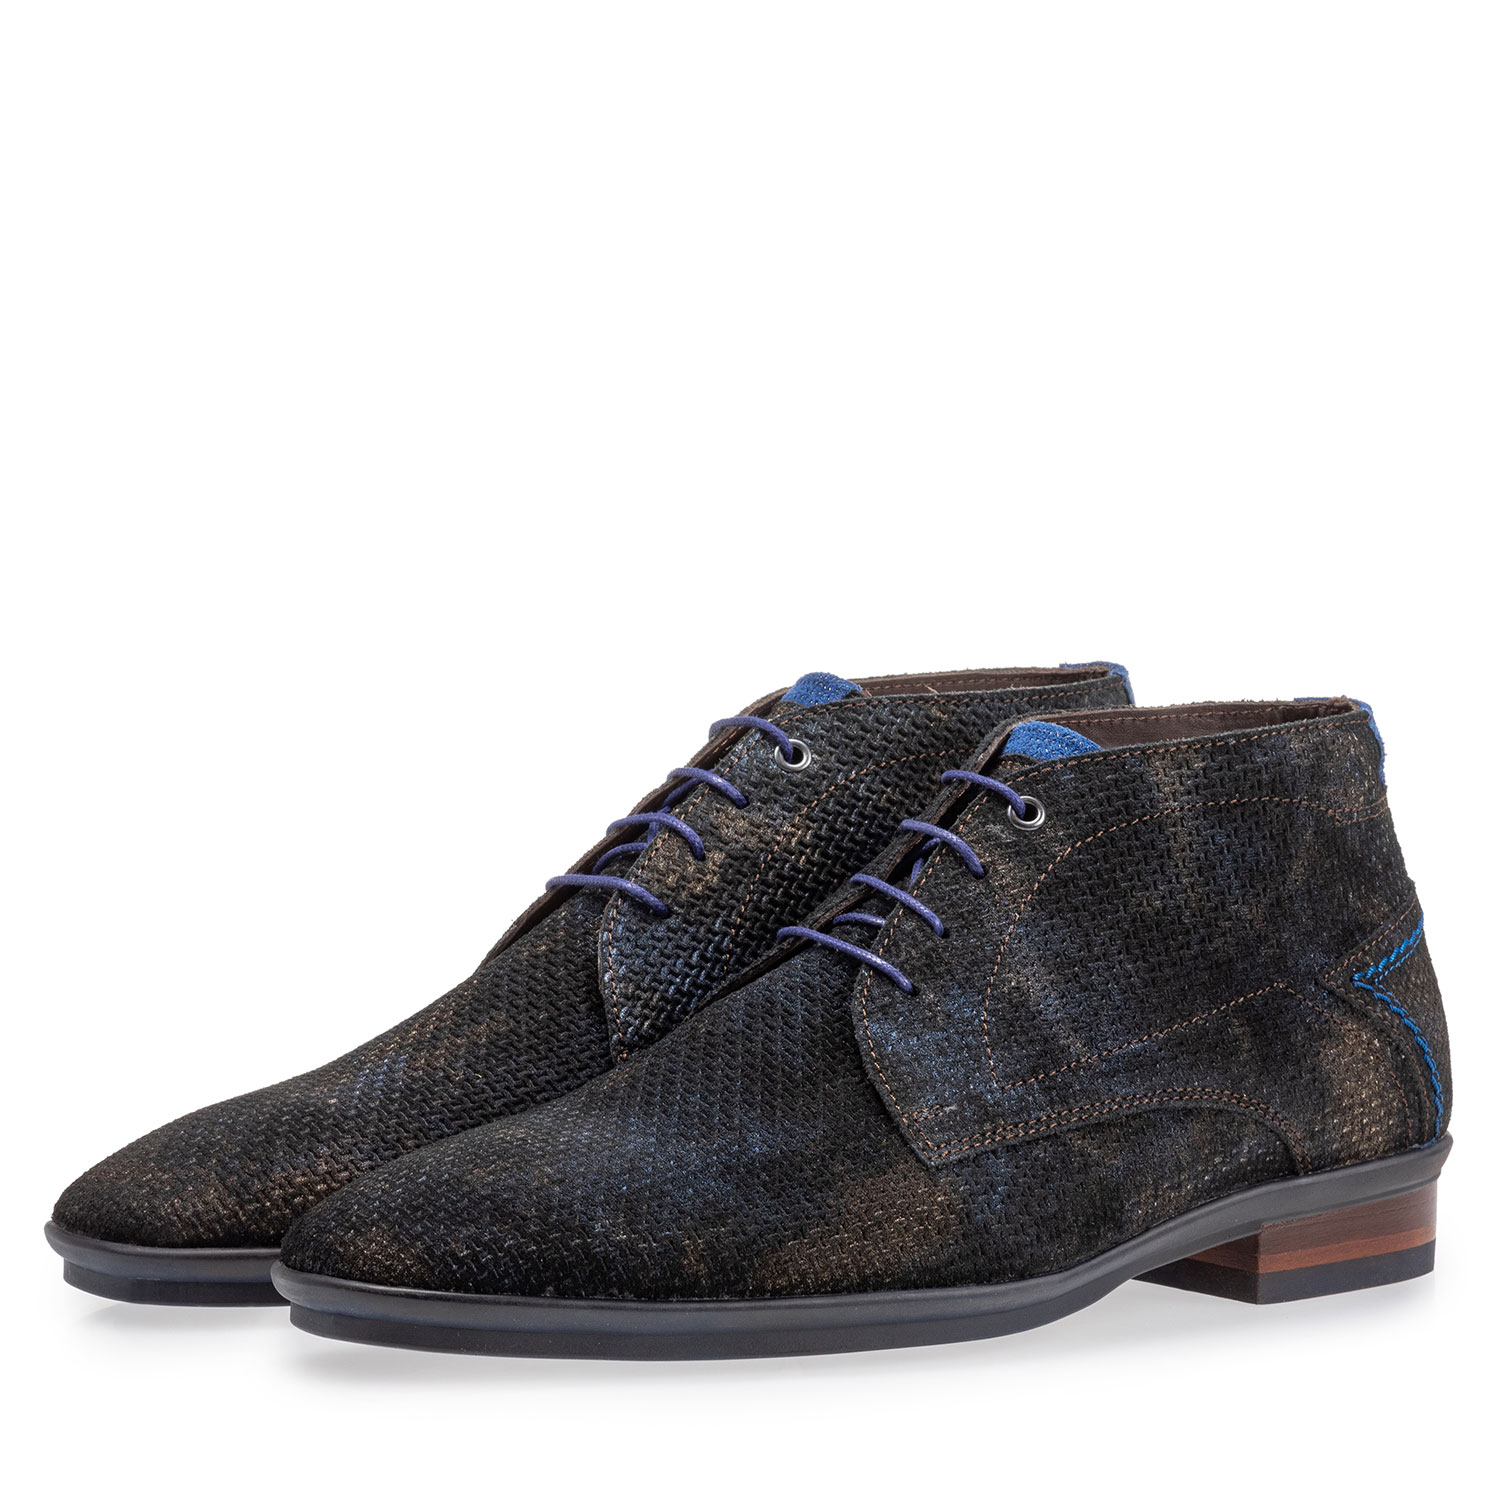 20440/24 - Lace boot with print bronze